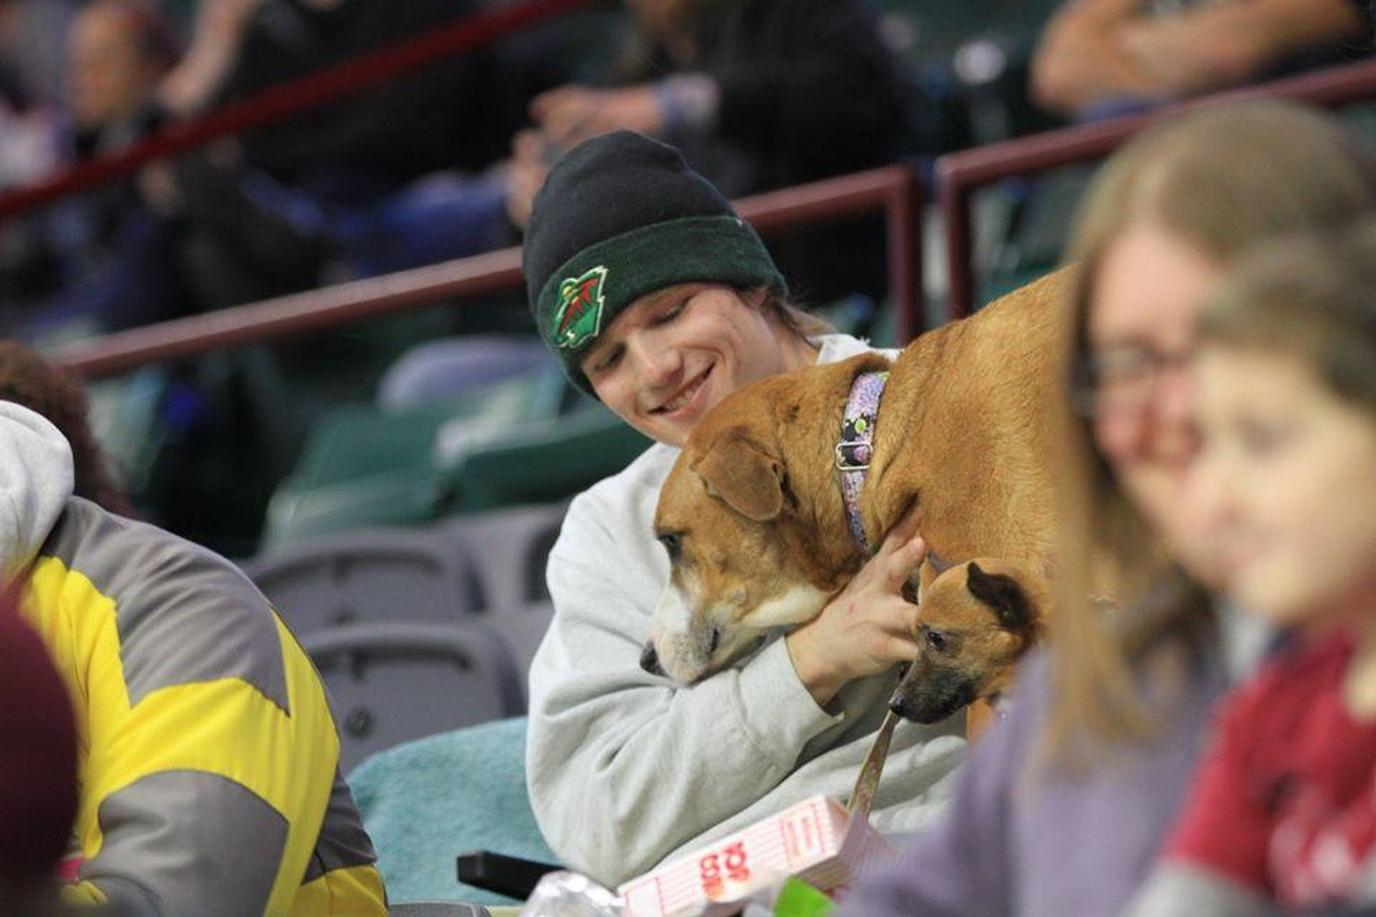 A Man Hugs His Dog in His Seat at a Dog-Friendly Hockey Game in Illinois.